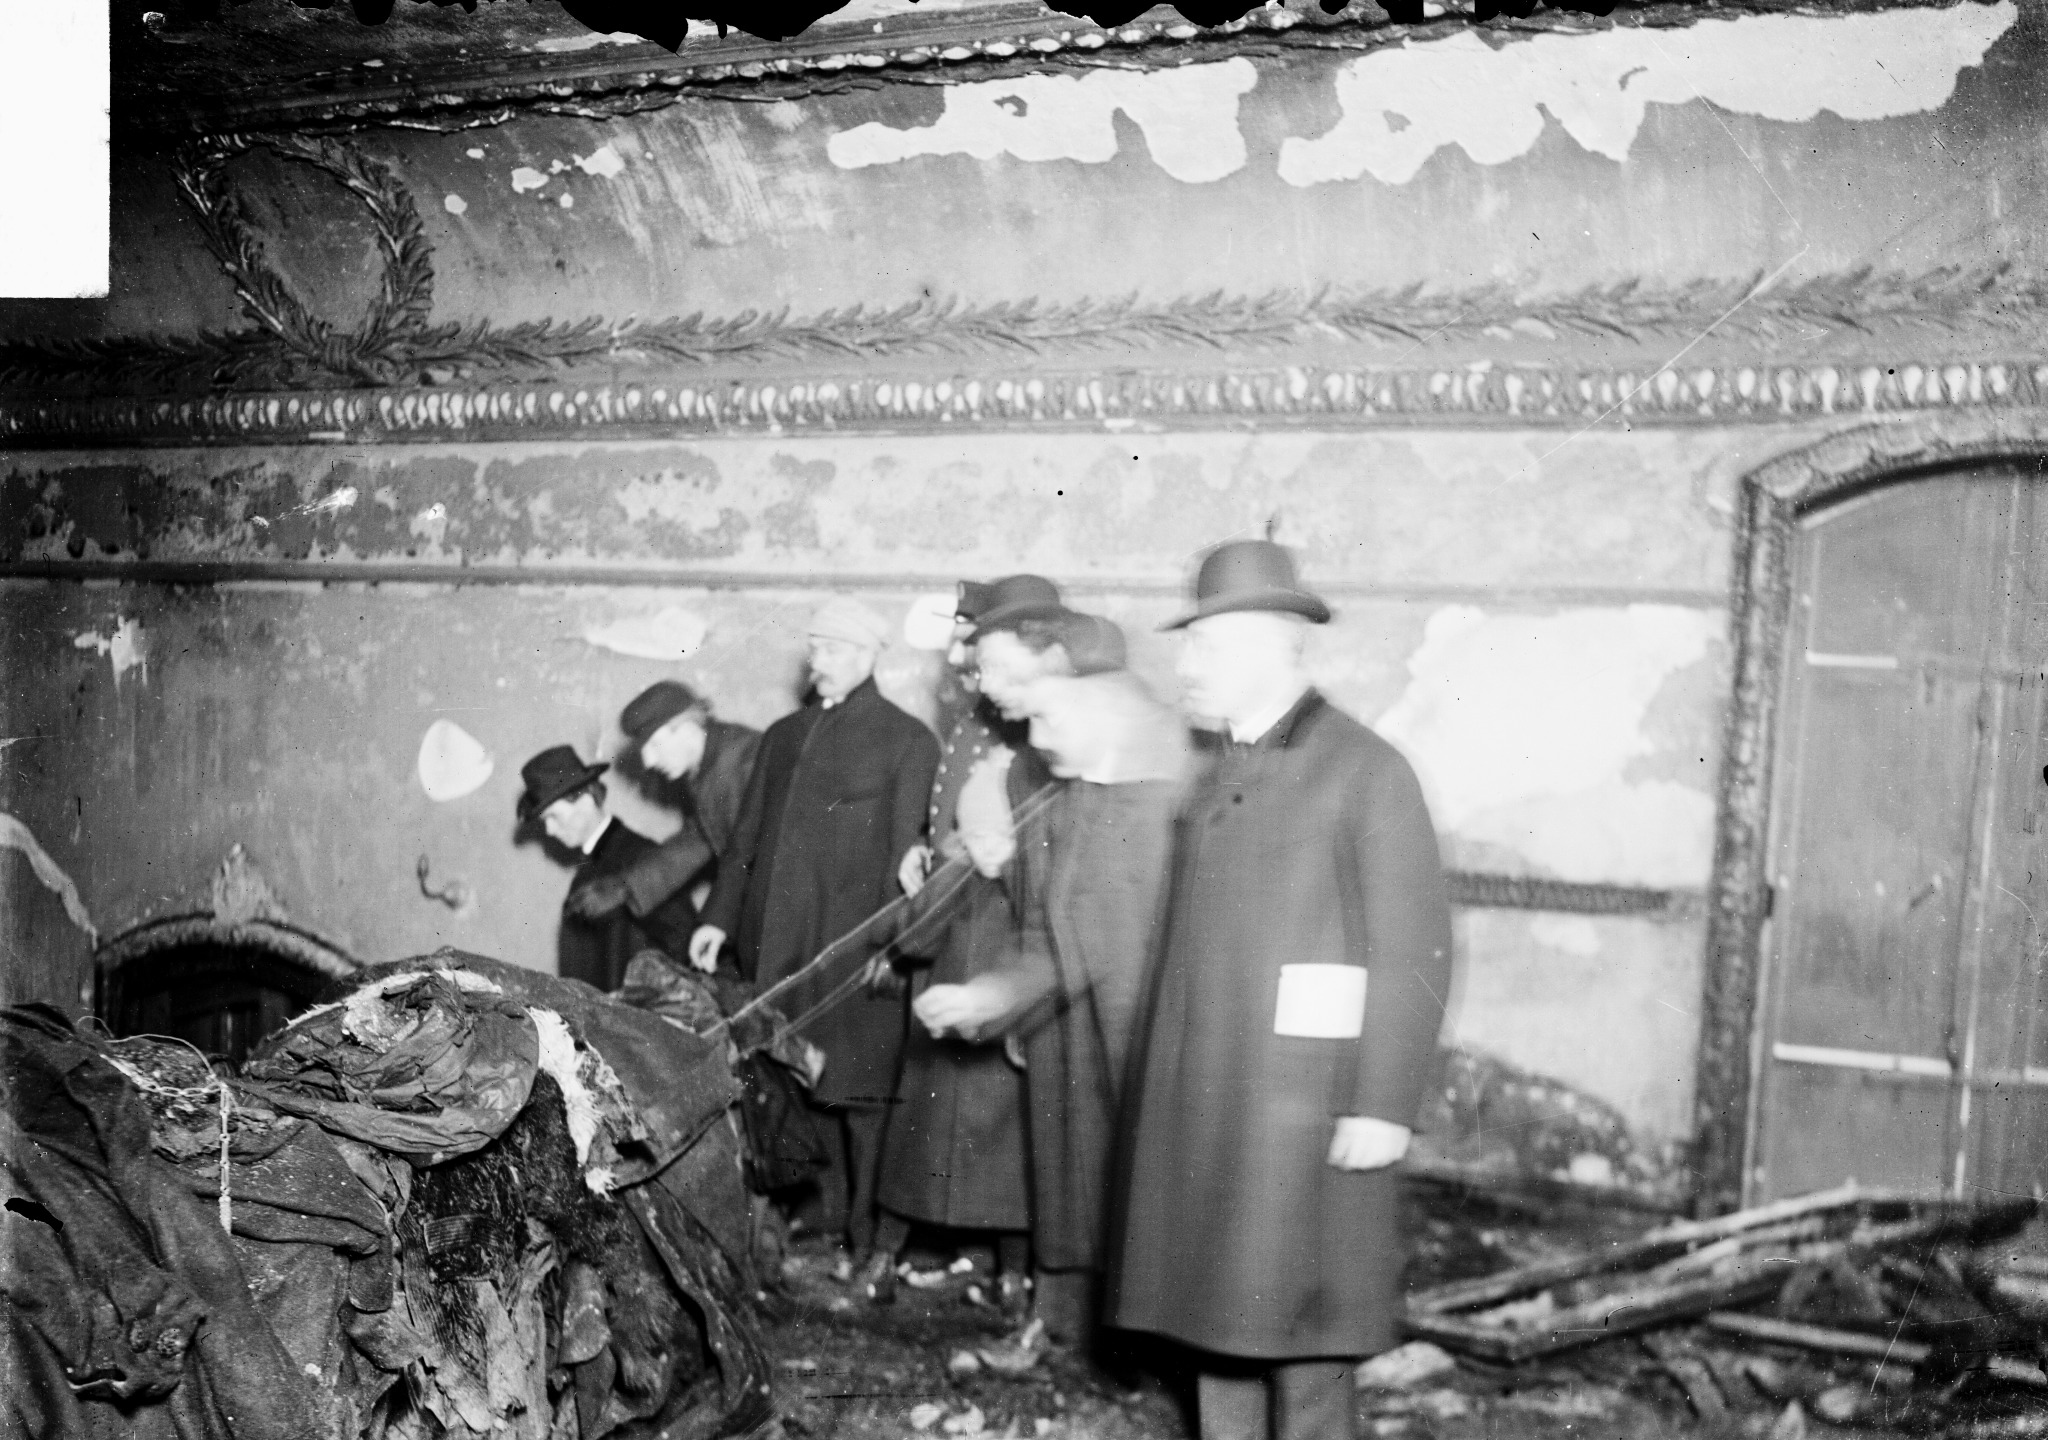 the iroquois theatre disaster Gendisasterscom is a genealogy site, compiling information on the historic disasters, events, and tragic accidents our ancestors endured, as well as, information about their life and death database and records searchable by surname.